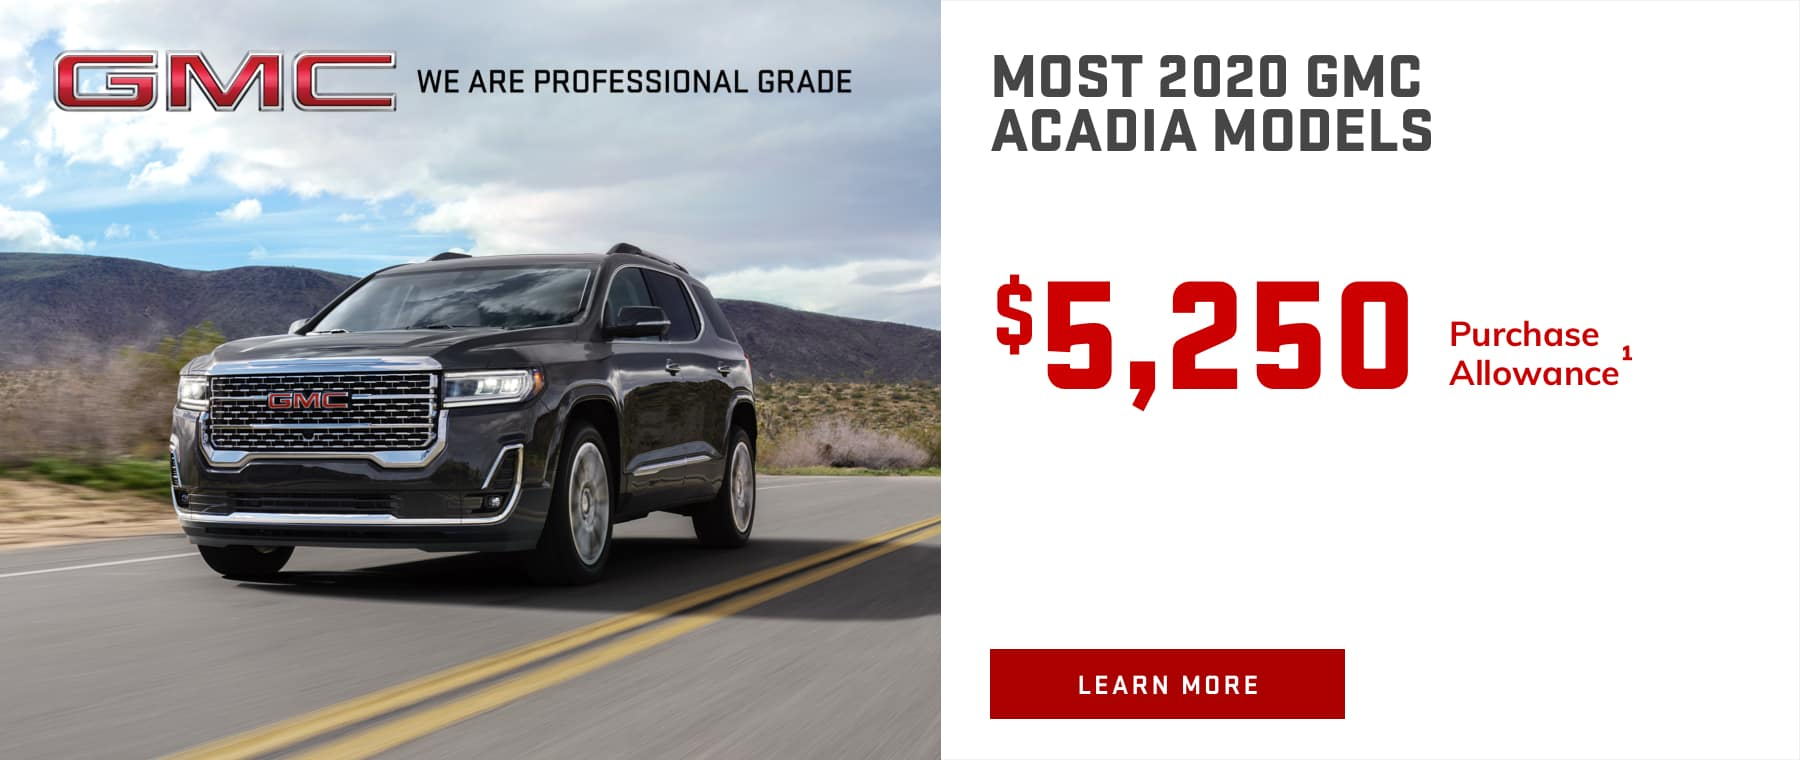 MOST 2020 GMC ACADIA MODELS - $5,250 Purchase Allowance